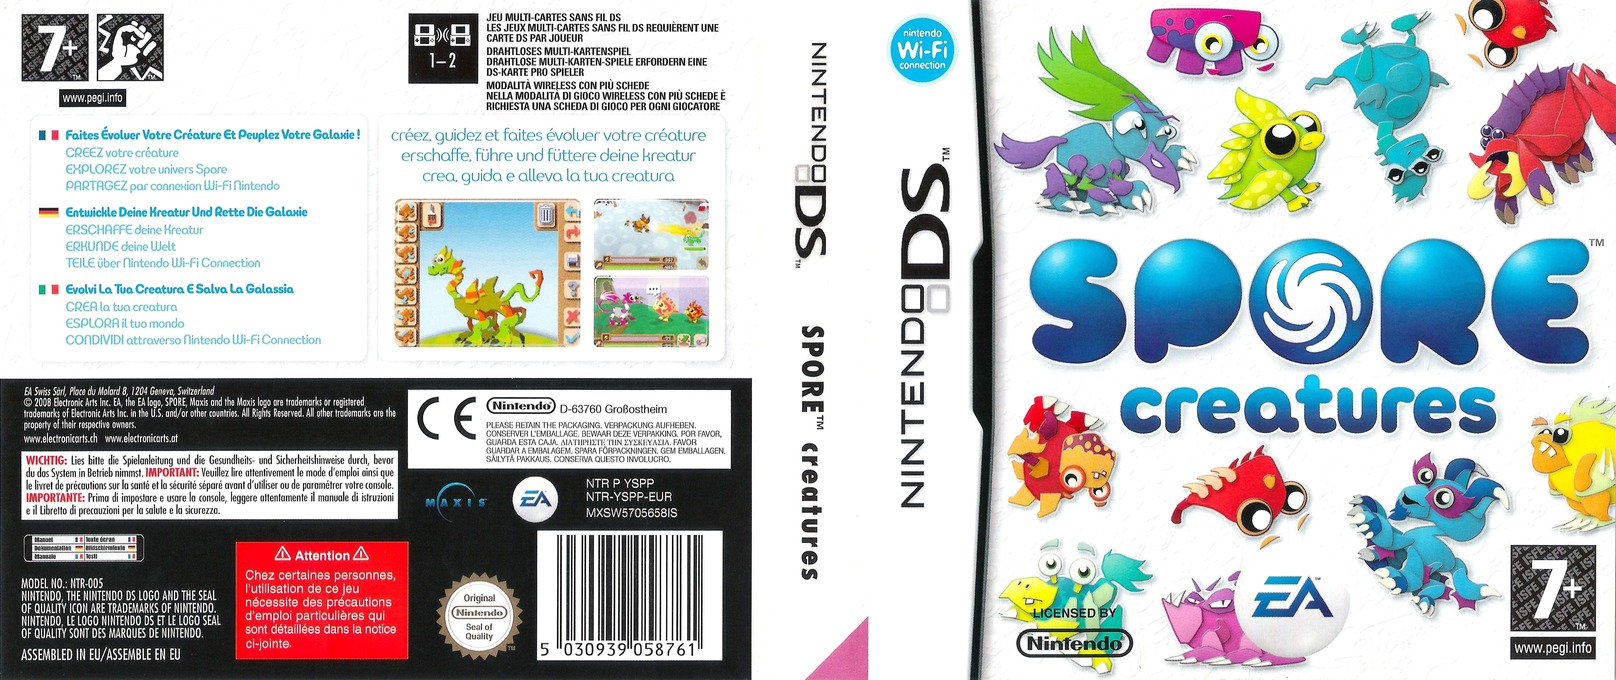 Spore - Creatures DS coverfullHQ (YSPP)